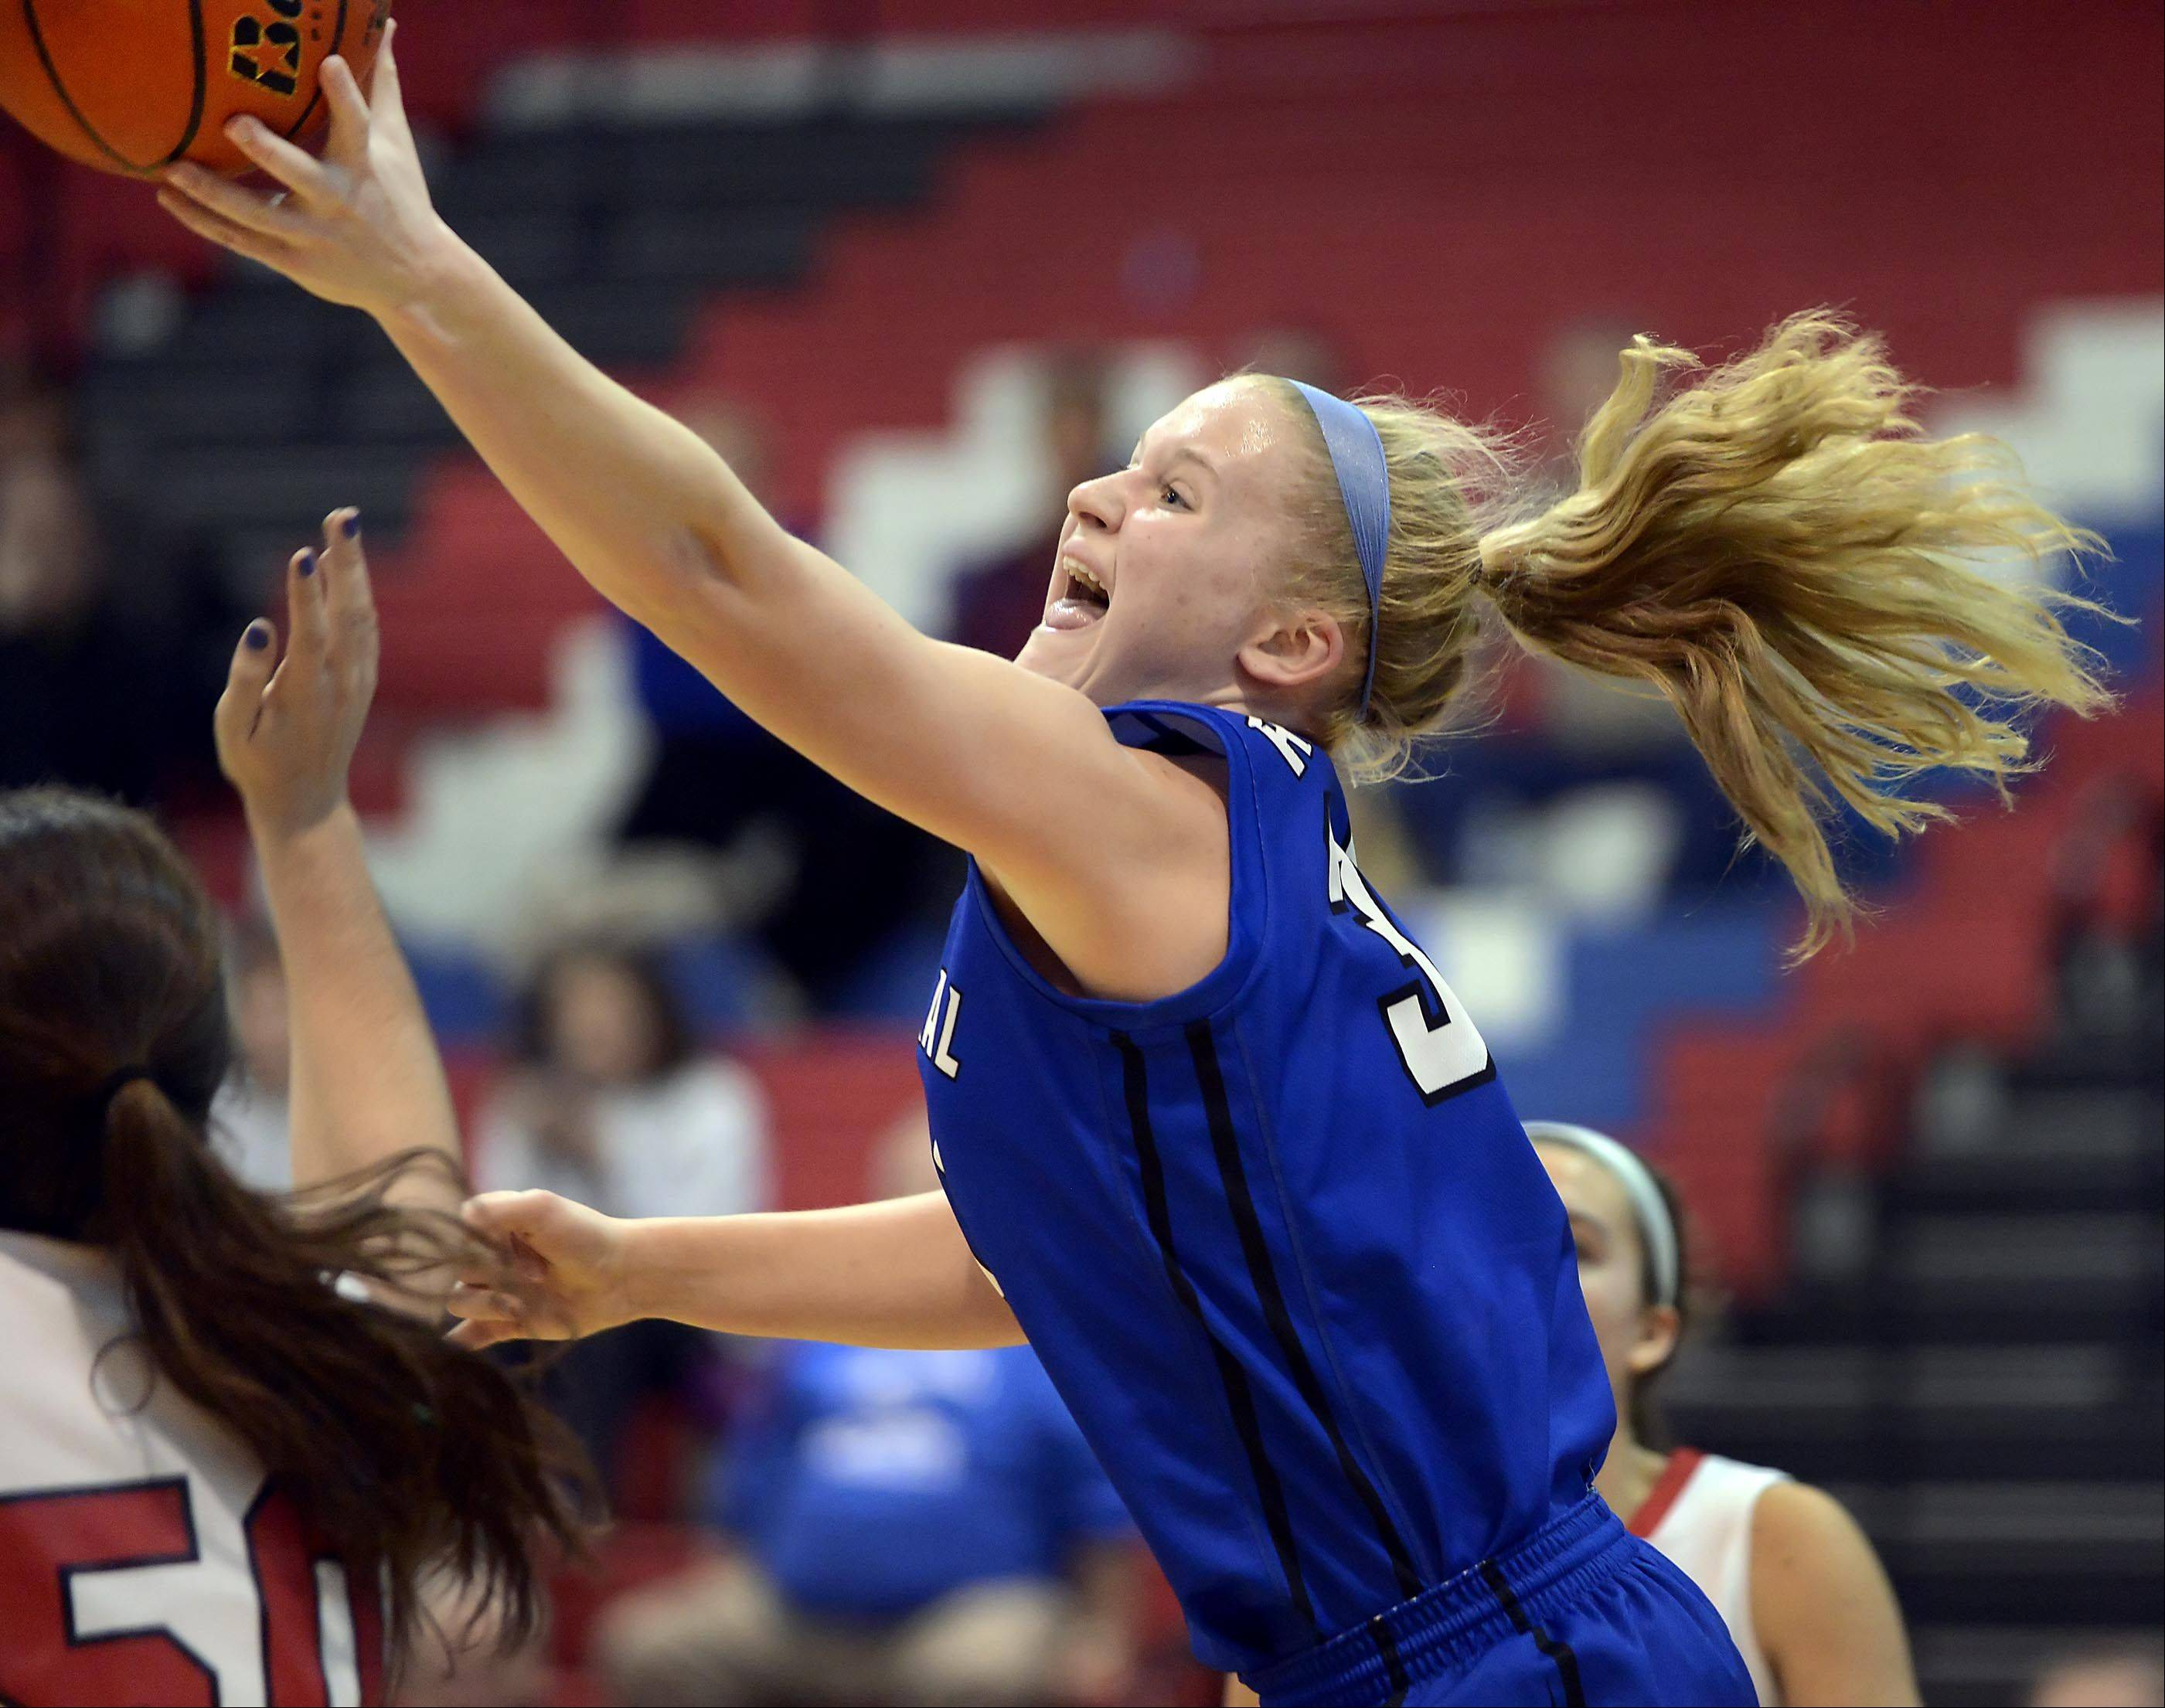 Burlington Central�s Sam Pryor reaches for a rebound against Maine South Monday in the consolation game at the 31st Annual Charger Classic girls basketball tournament at Dundee-Crown High School in Carpentersville.